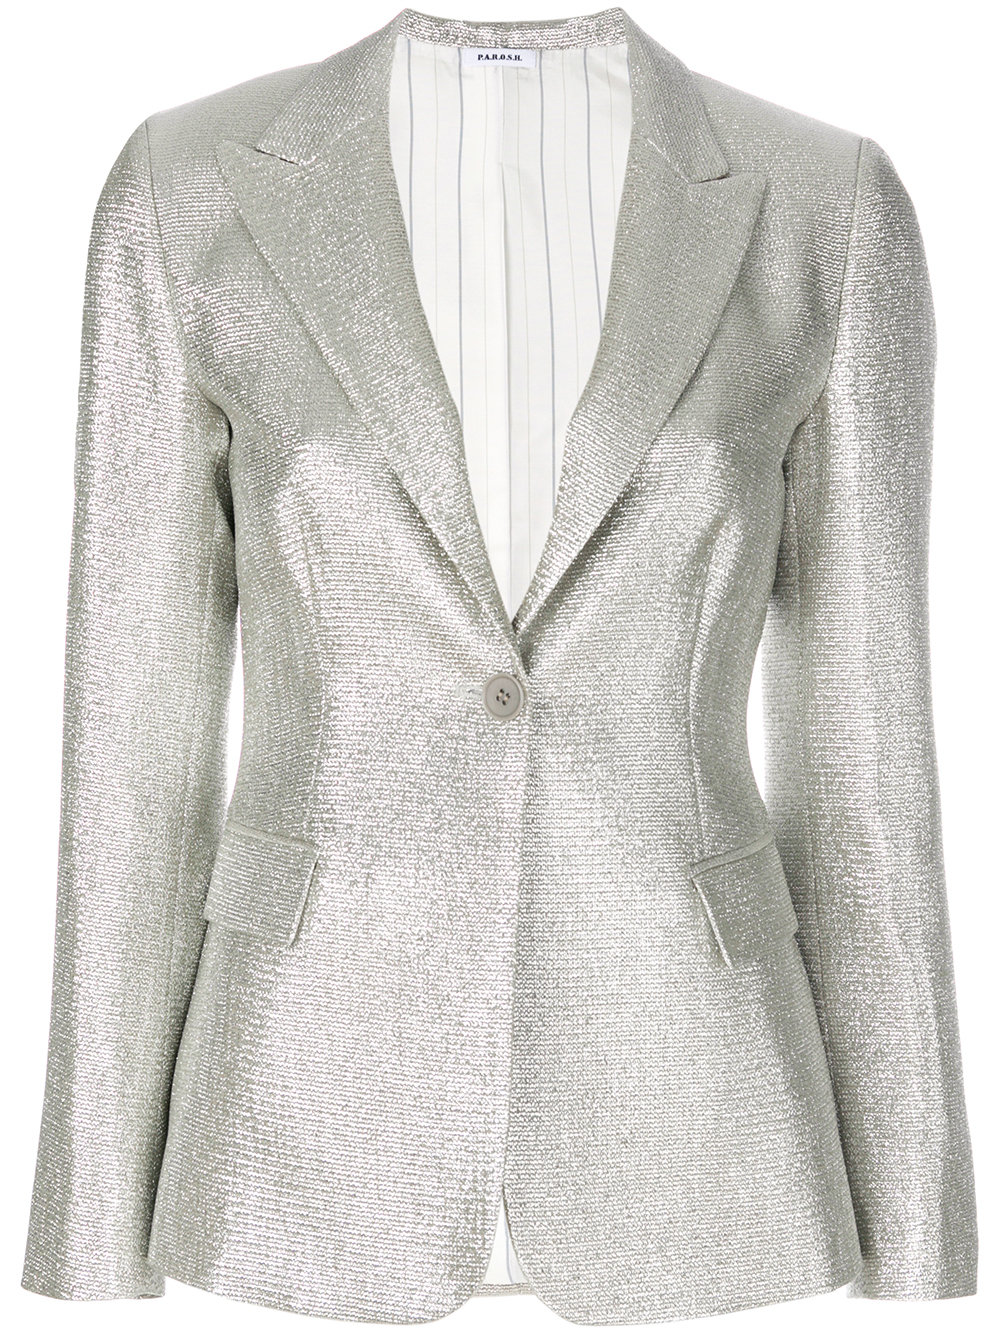 Parosh textured stitch blazer